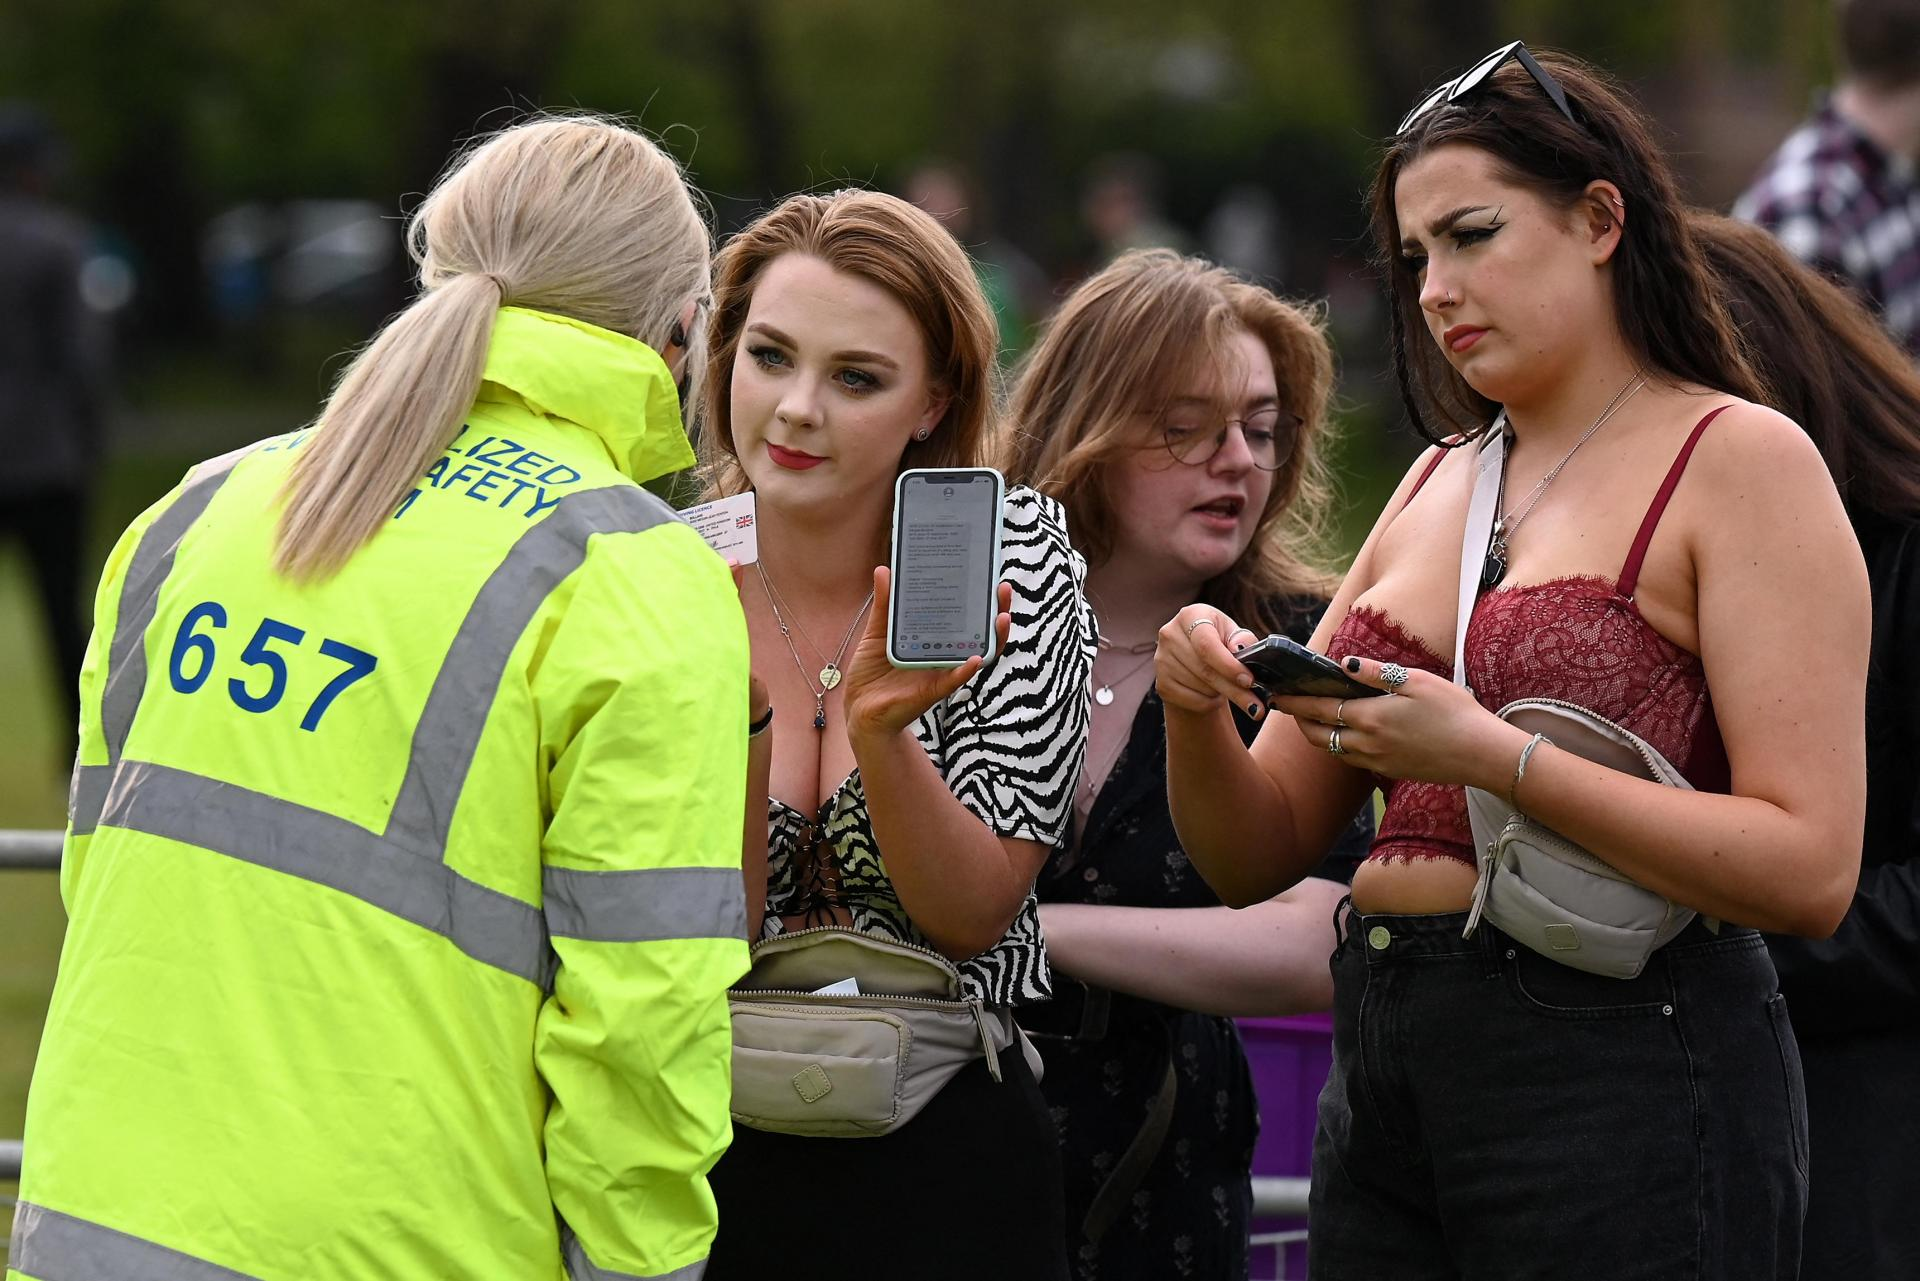 Concert-goers presenting a negative COVID-19 result on their mobile phone as well as their driving licence as they arrive at the concert venue.